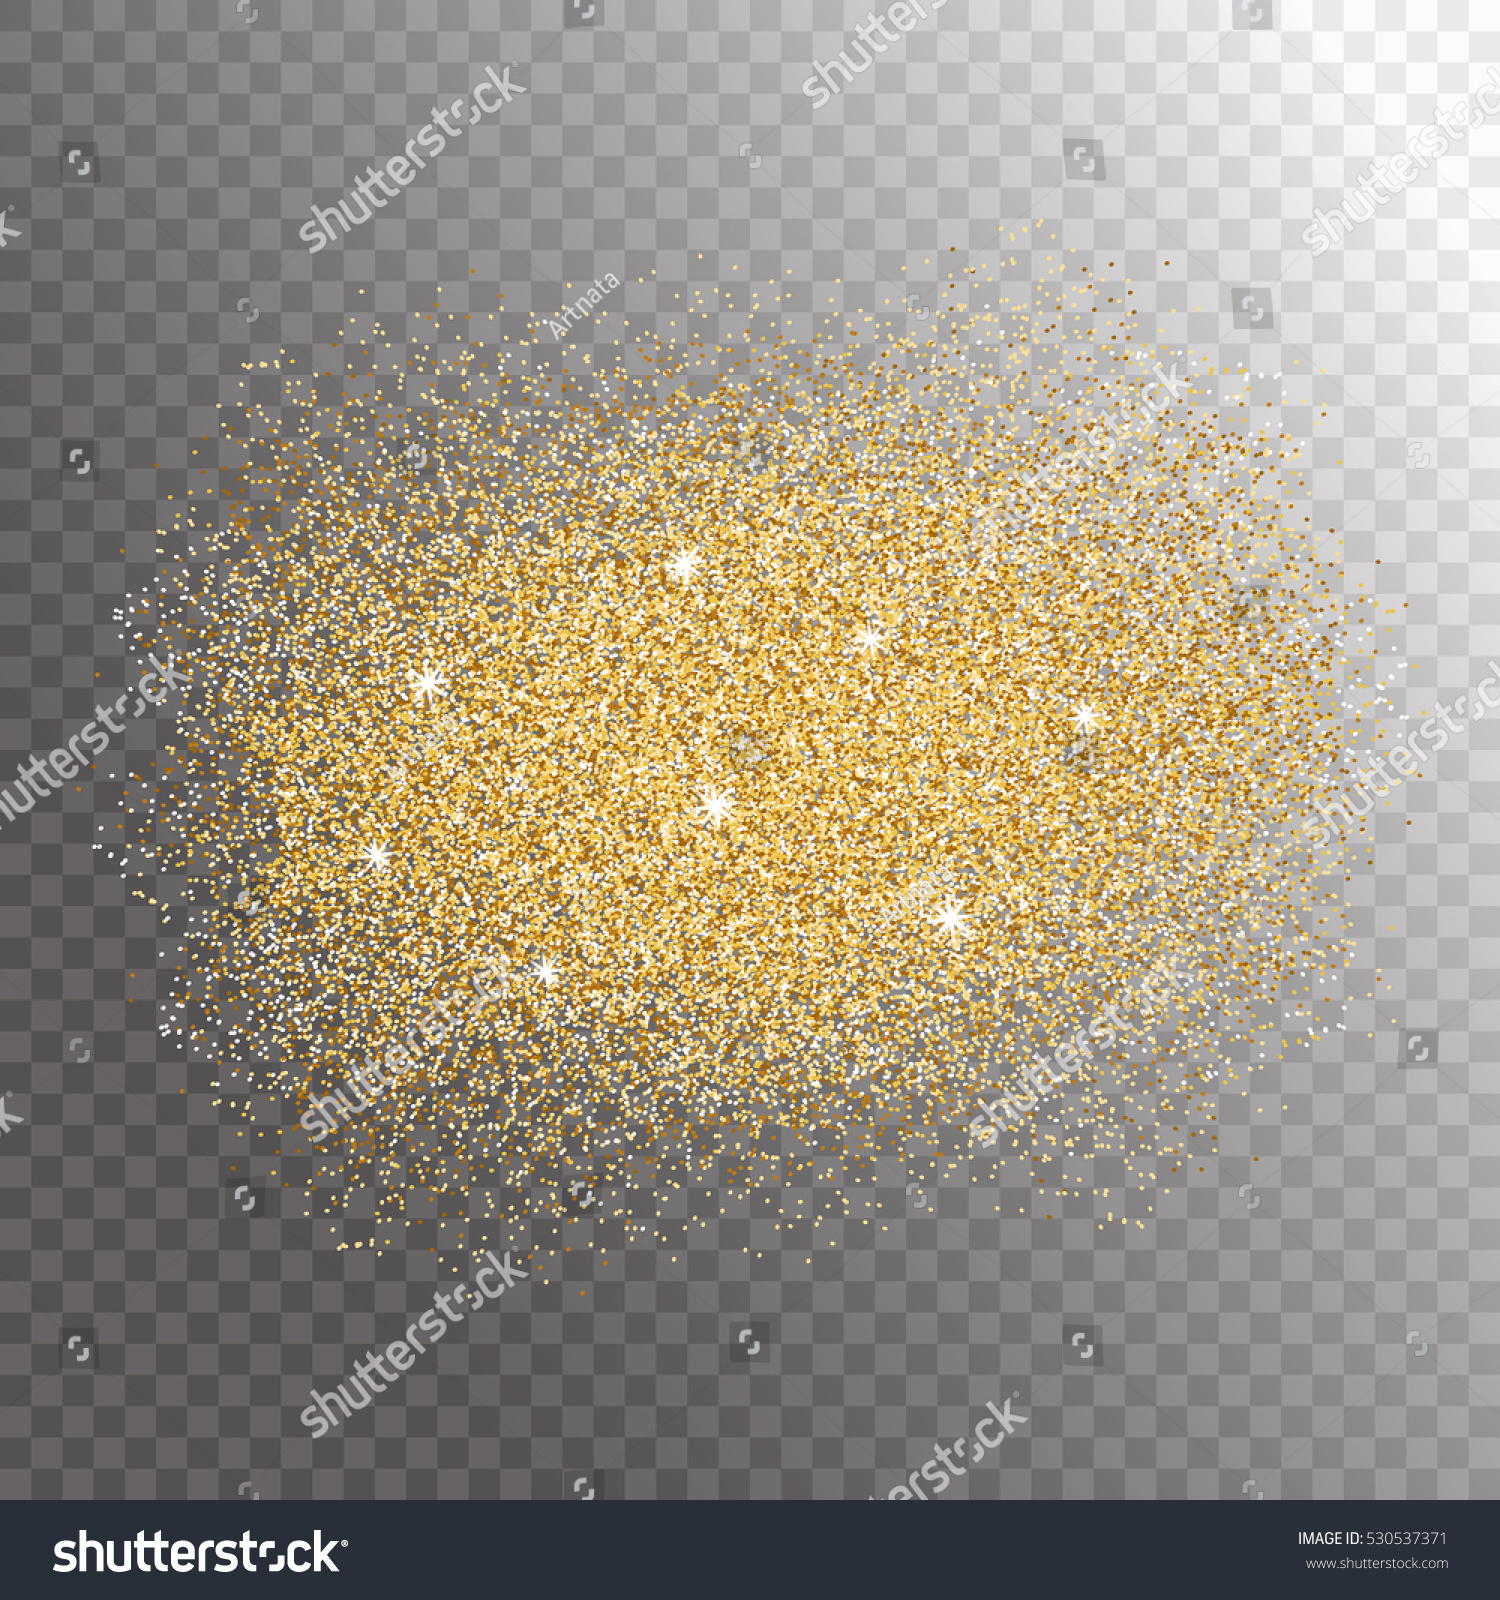 Gold glitter bright vector transparent background golden sparkles - Gold Glitter Sparkles Splash On Transparent Background Vector Illustration